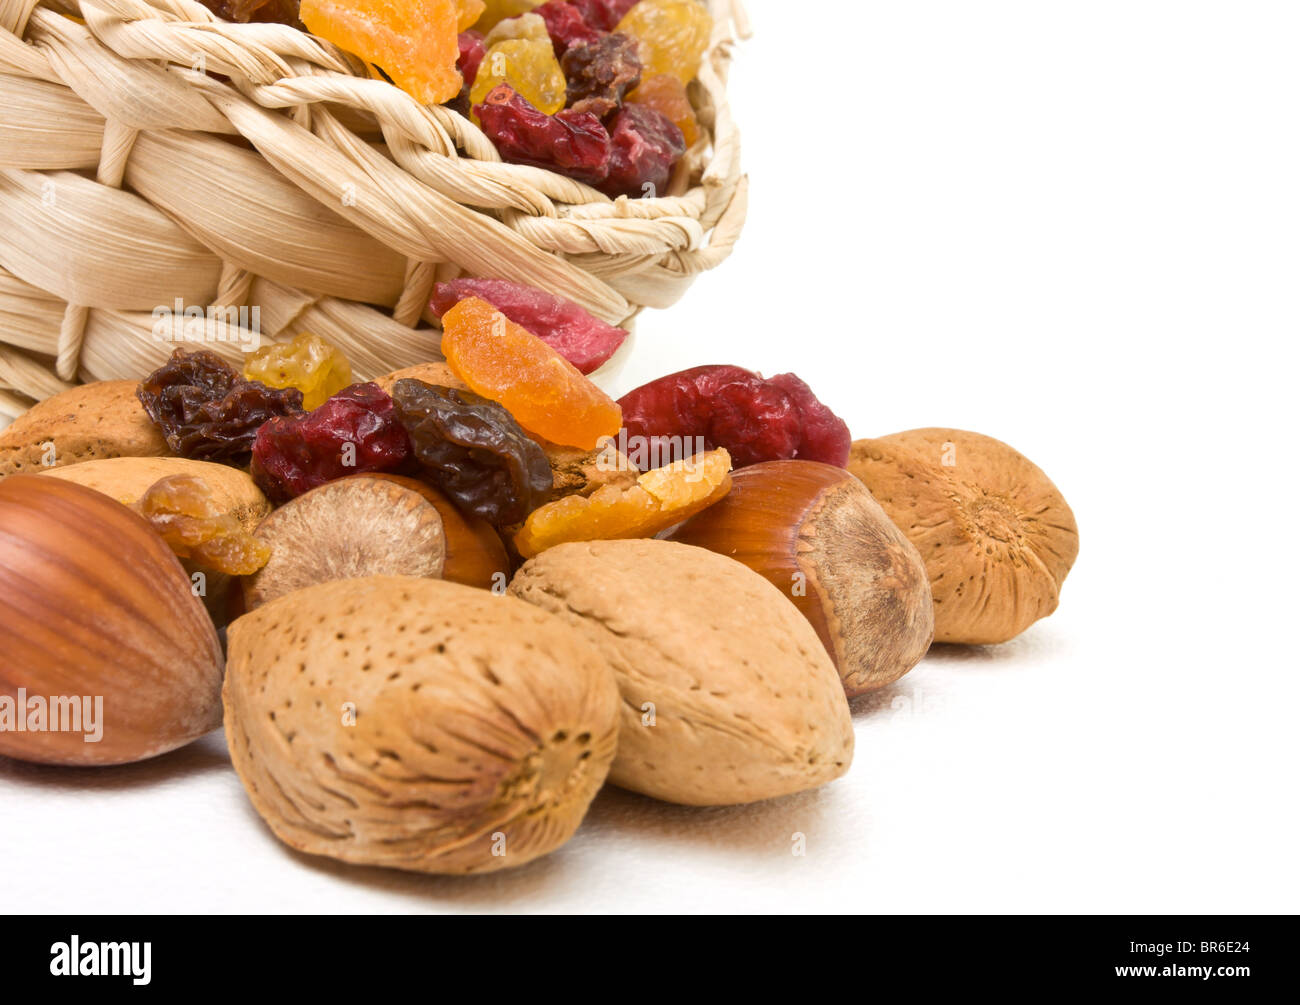 Mixed dried fruits and nuts spilling from basket on white background. - Stock Image